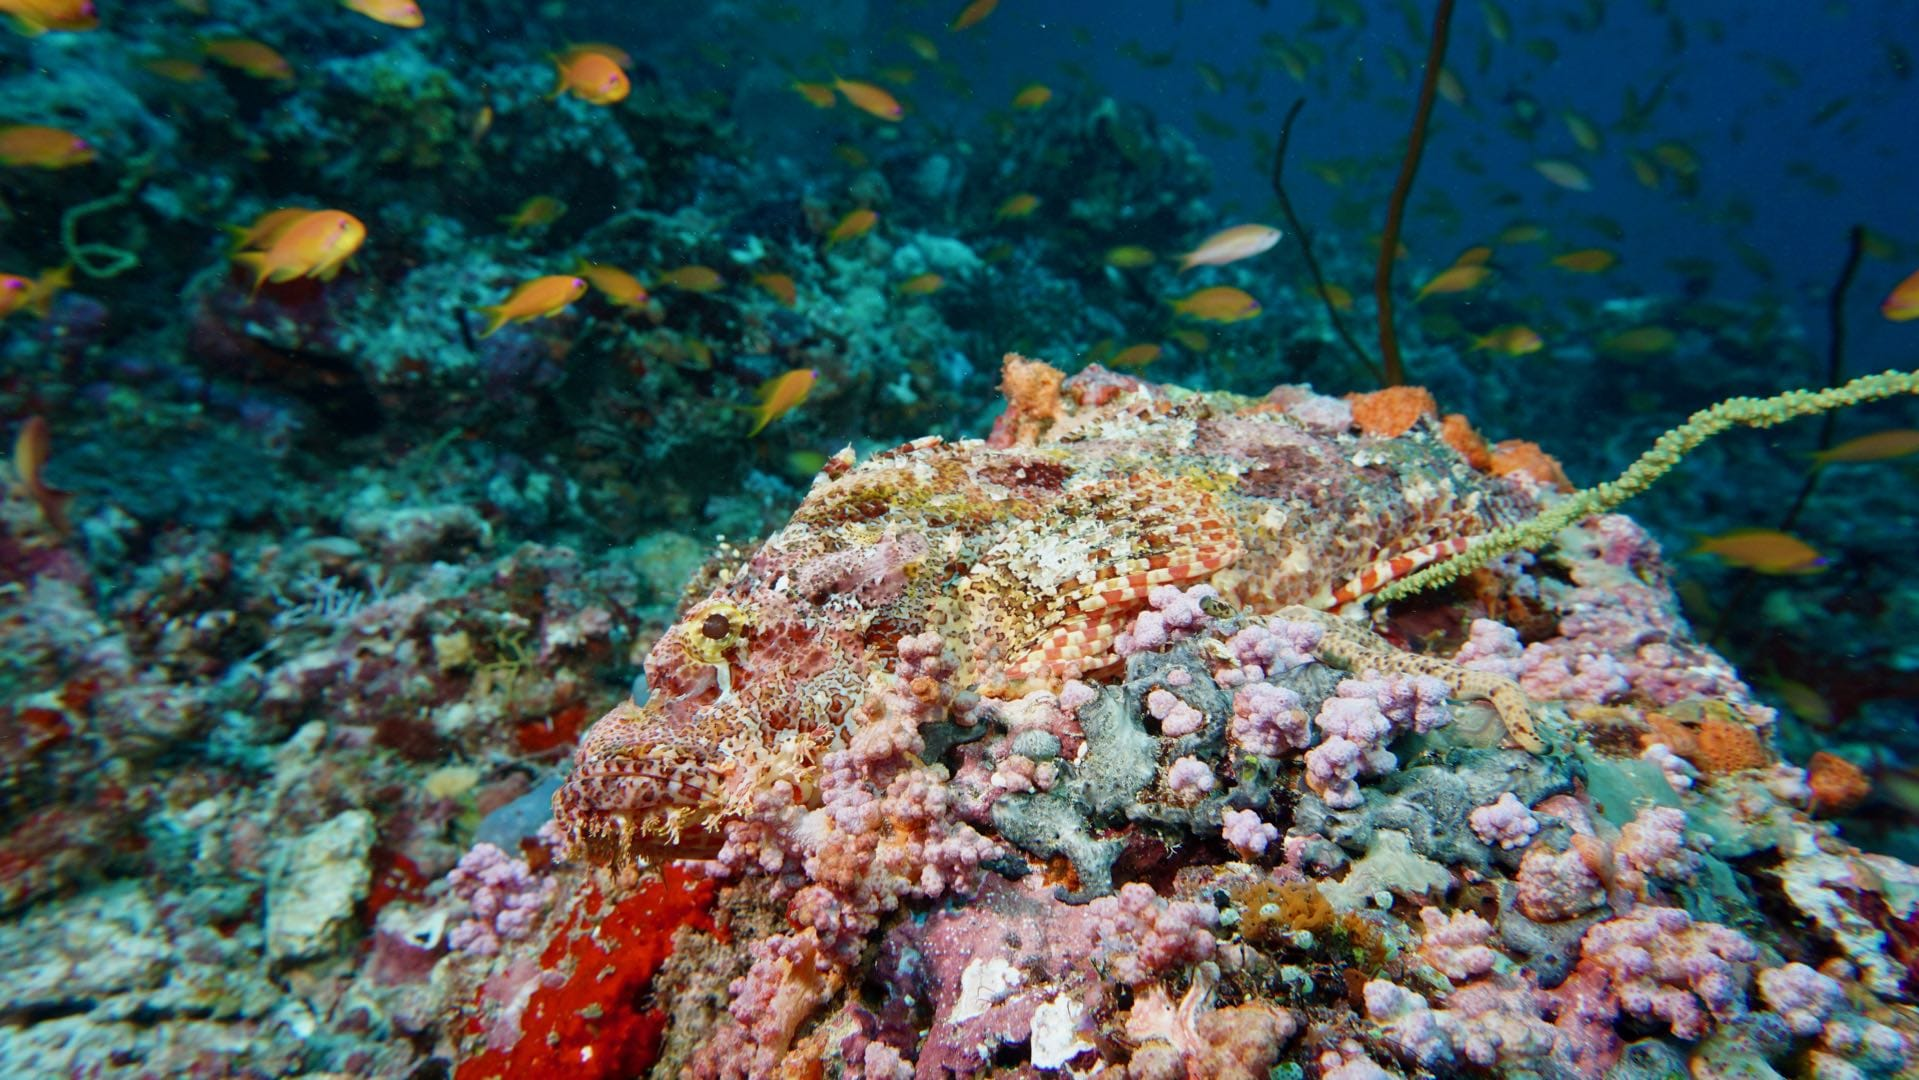 Divemood Ari Queen Liveaboard Scorpionfish Camouflage